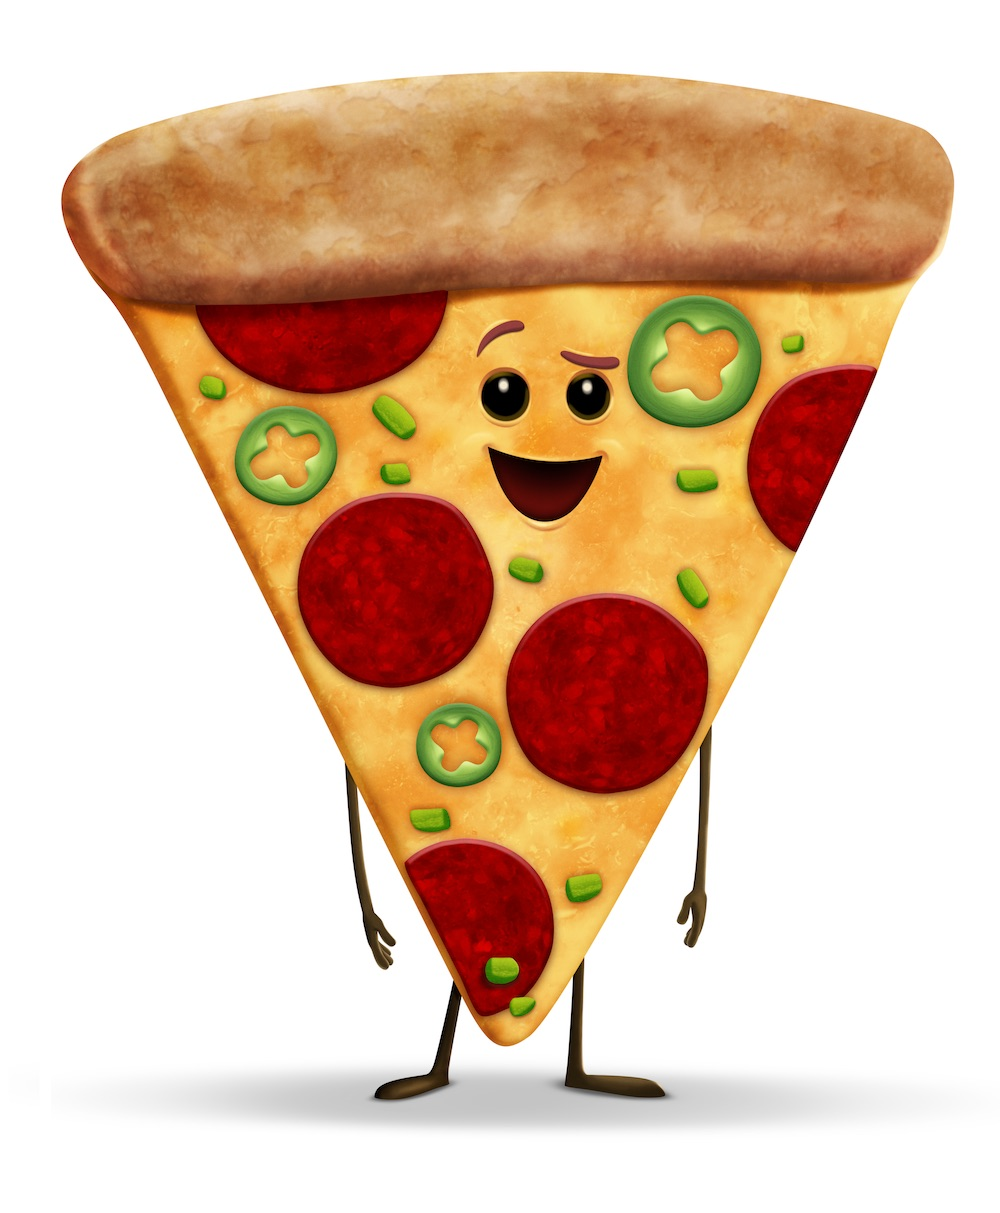 pizza-emoji-movie-blog0717.jpg